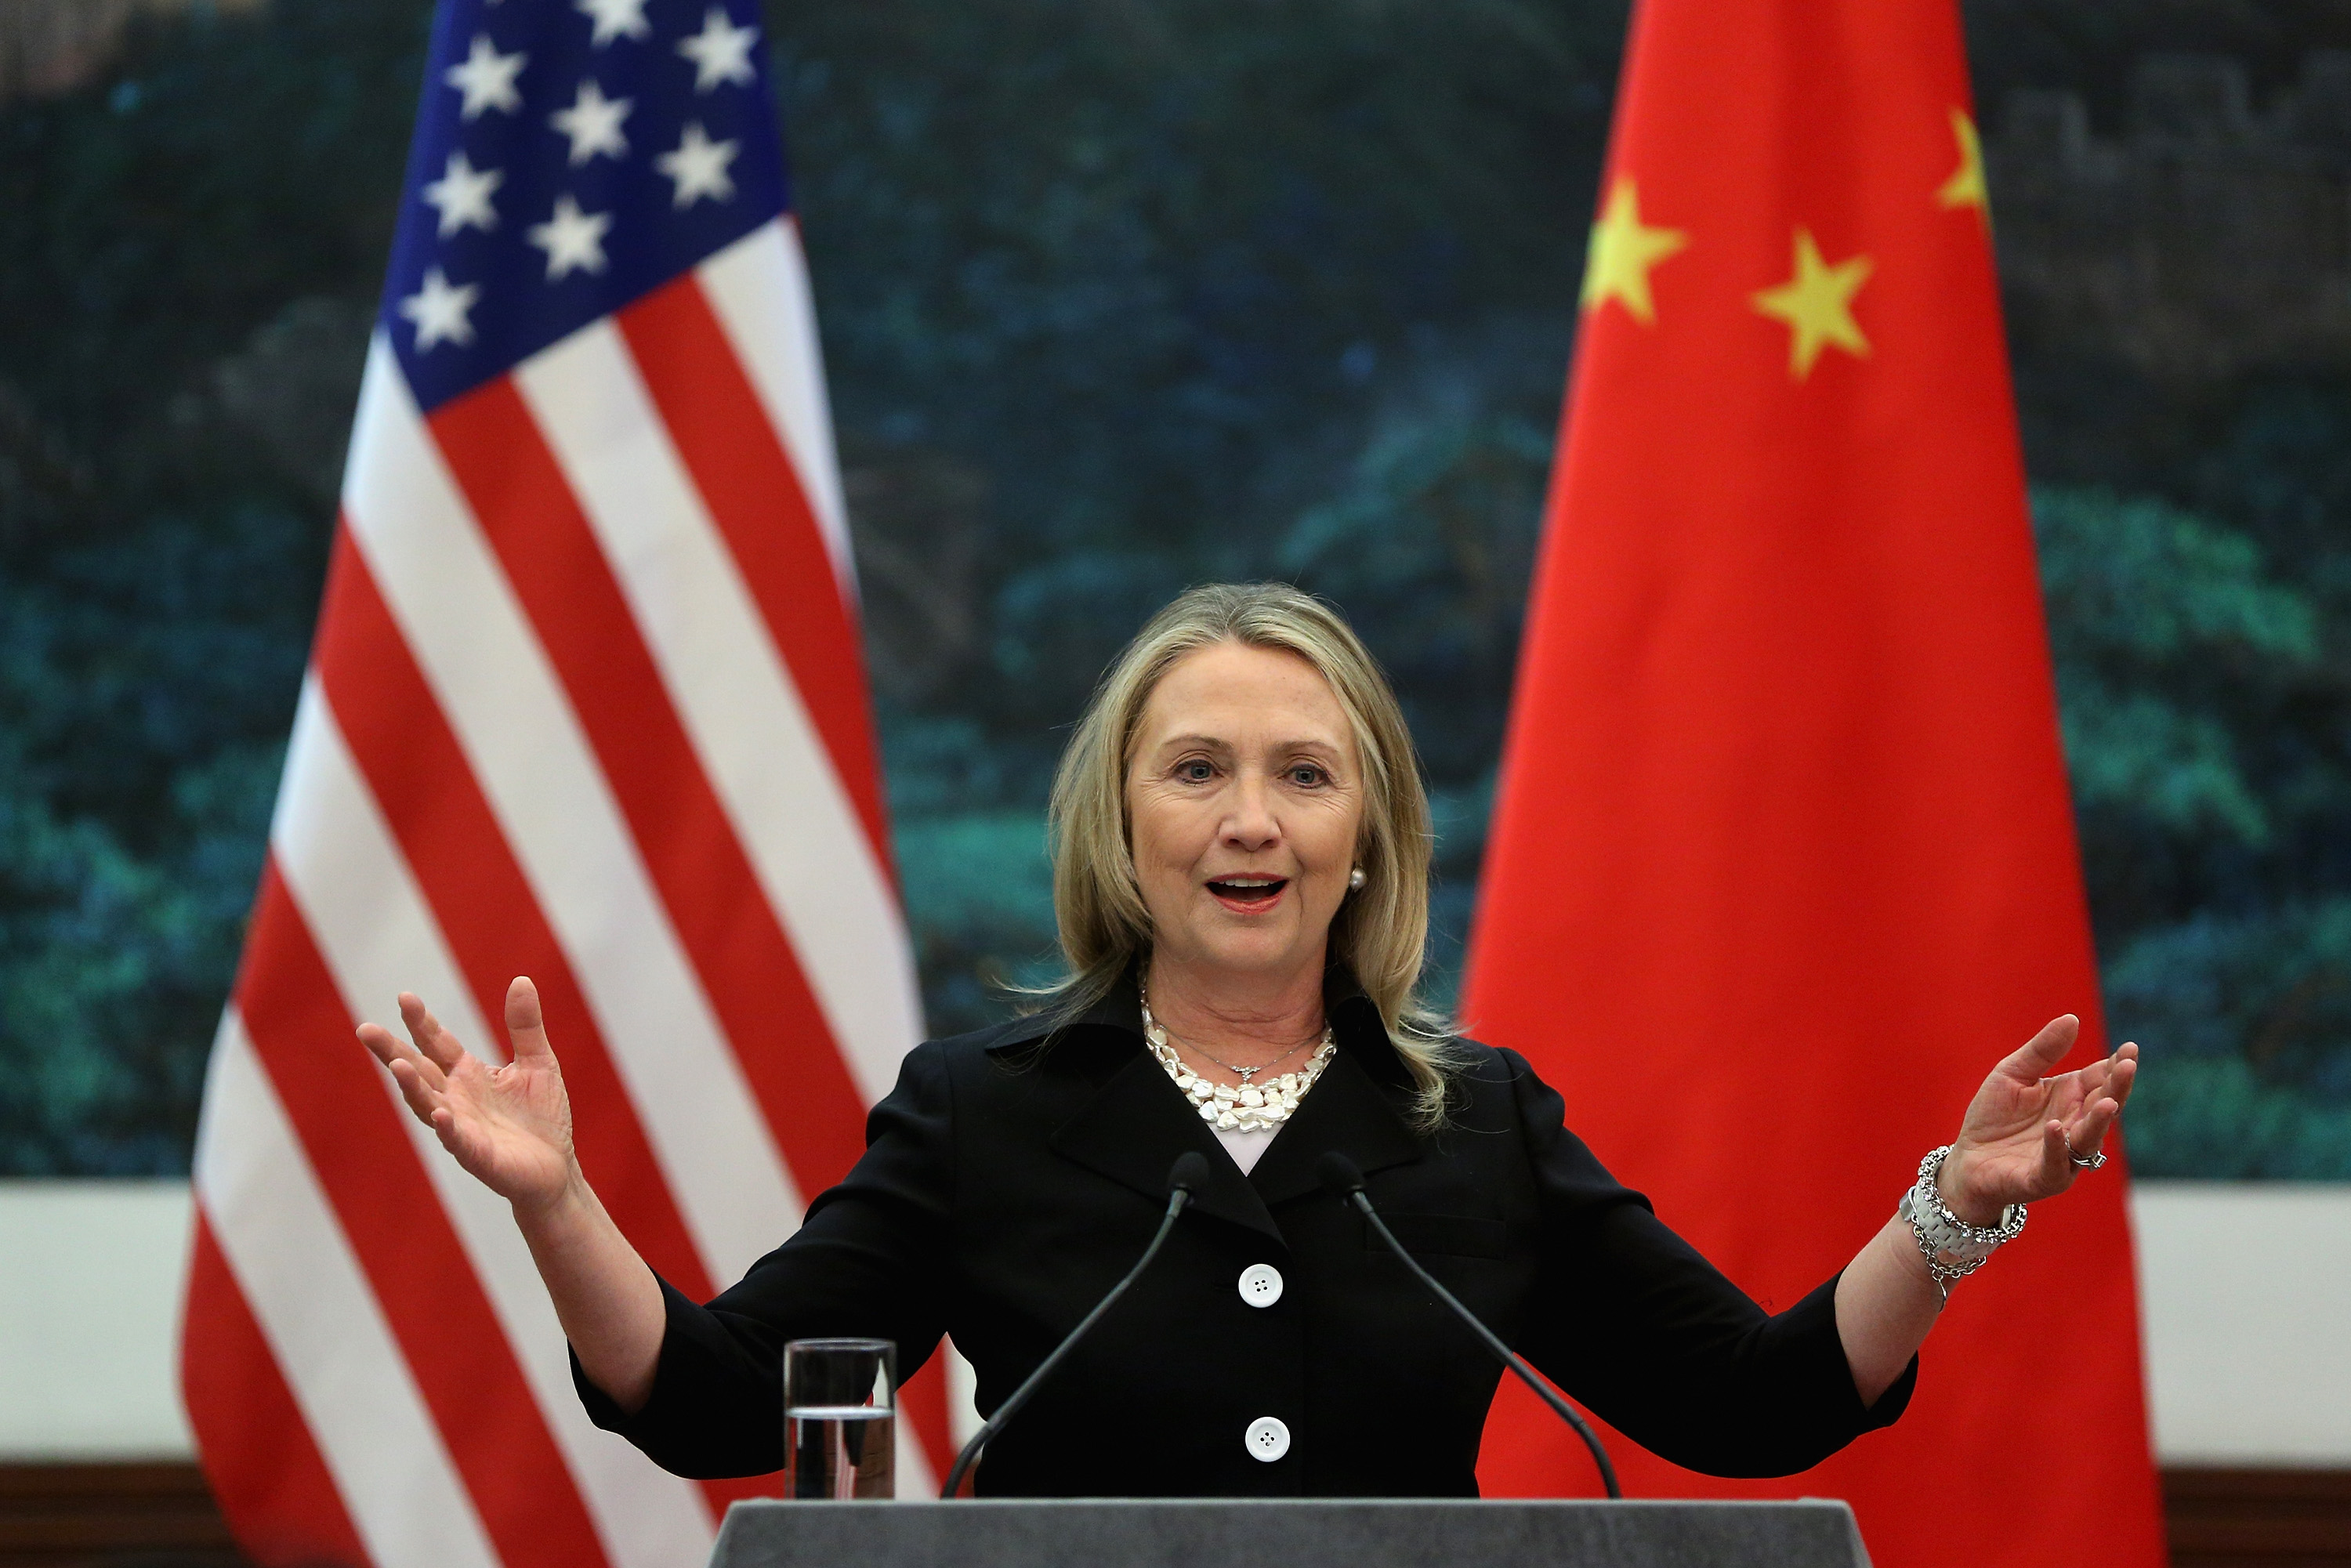 Clinton's Criticism of the Chinese Regime Highlights Their Odd Relationship